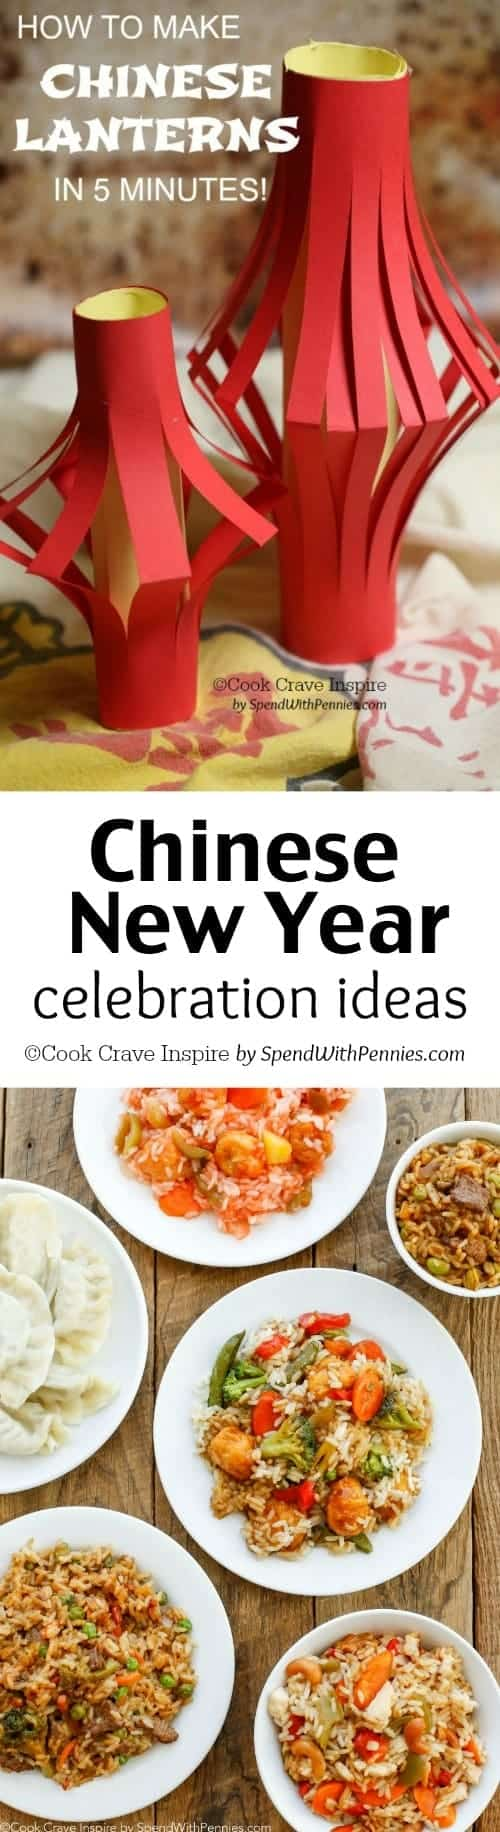 Find easy ideas to celebrate Chinese New Year with your friends and family! Including quick food ideas, decor and crafts!